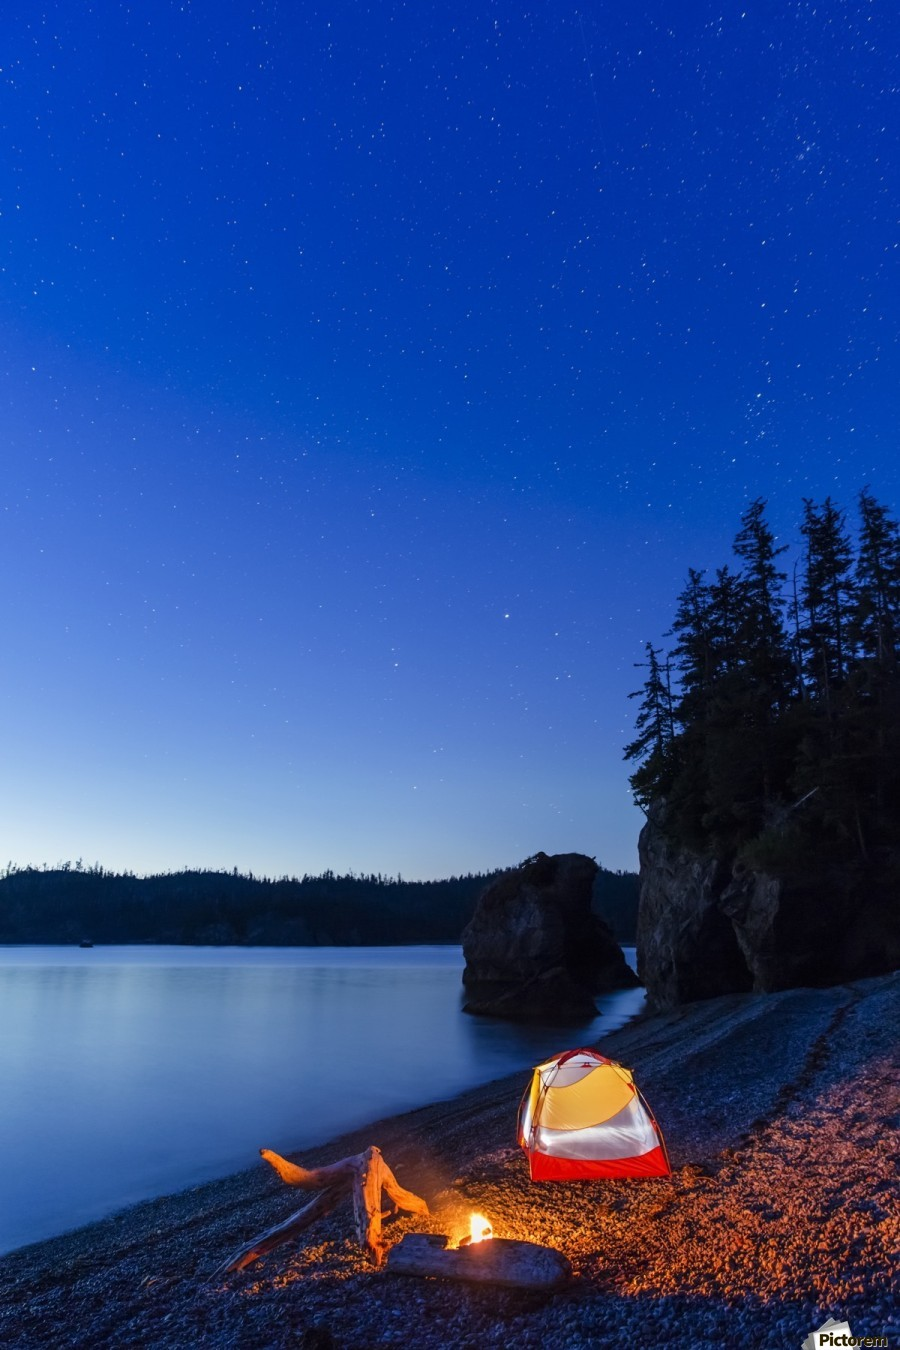 A campfire built on a beach at dusk next to a glowing tent, tranquil ocean water reflecting the warm light, Hesketh Island; Homer, Alaska, United States of America   Print